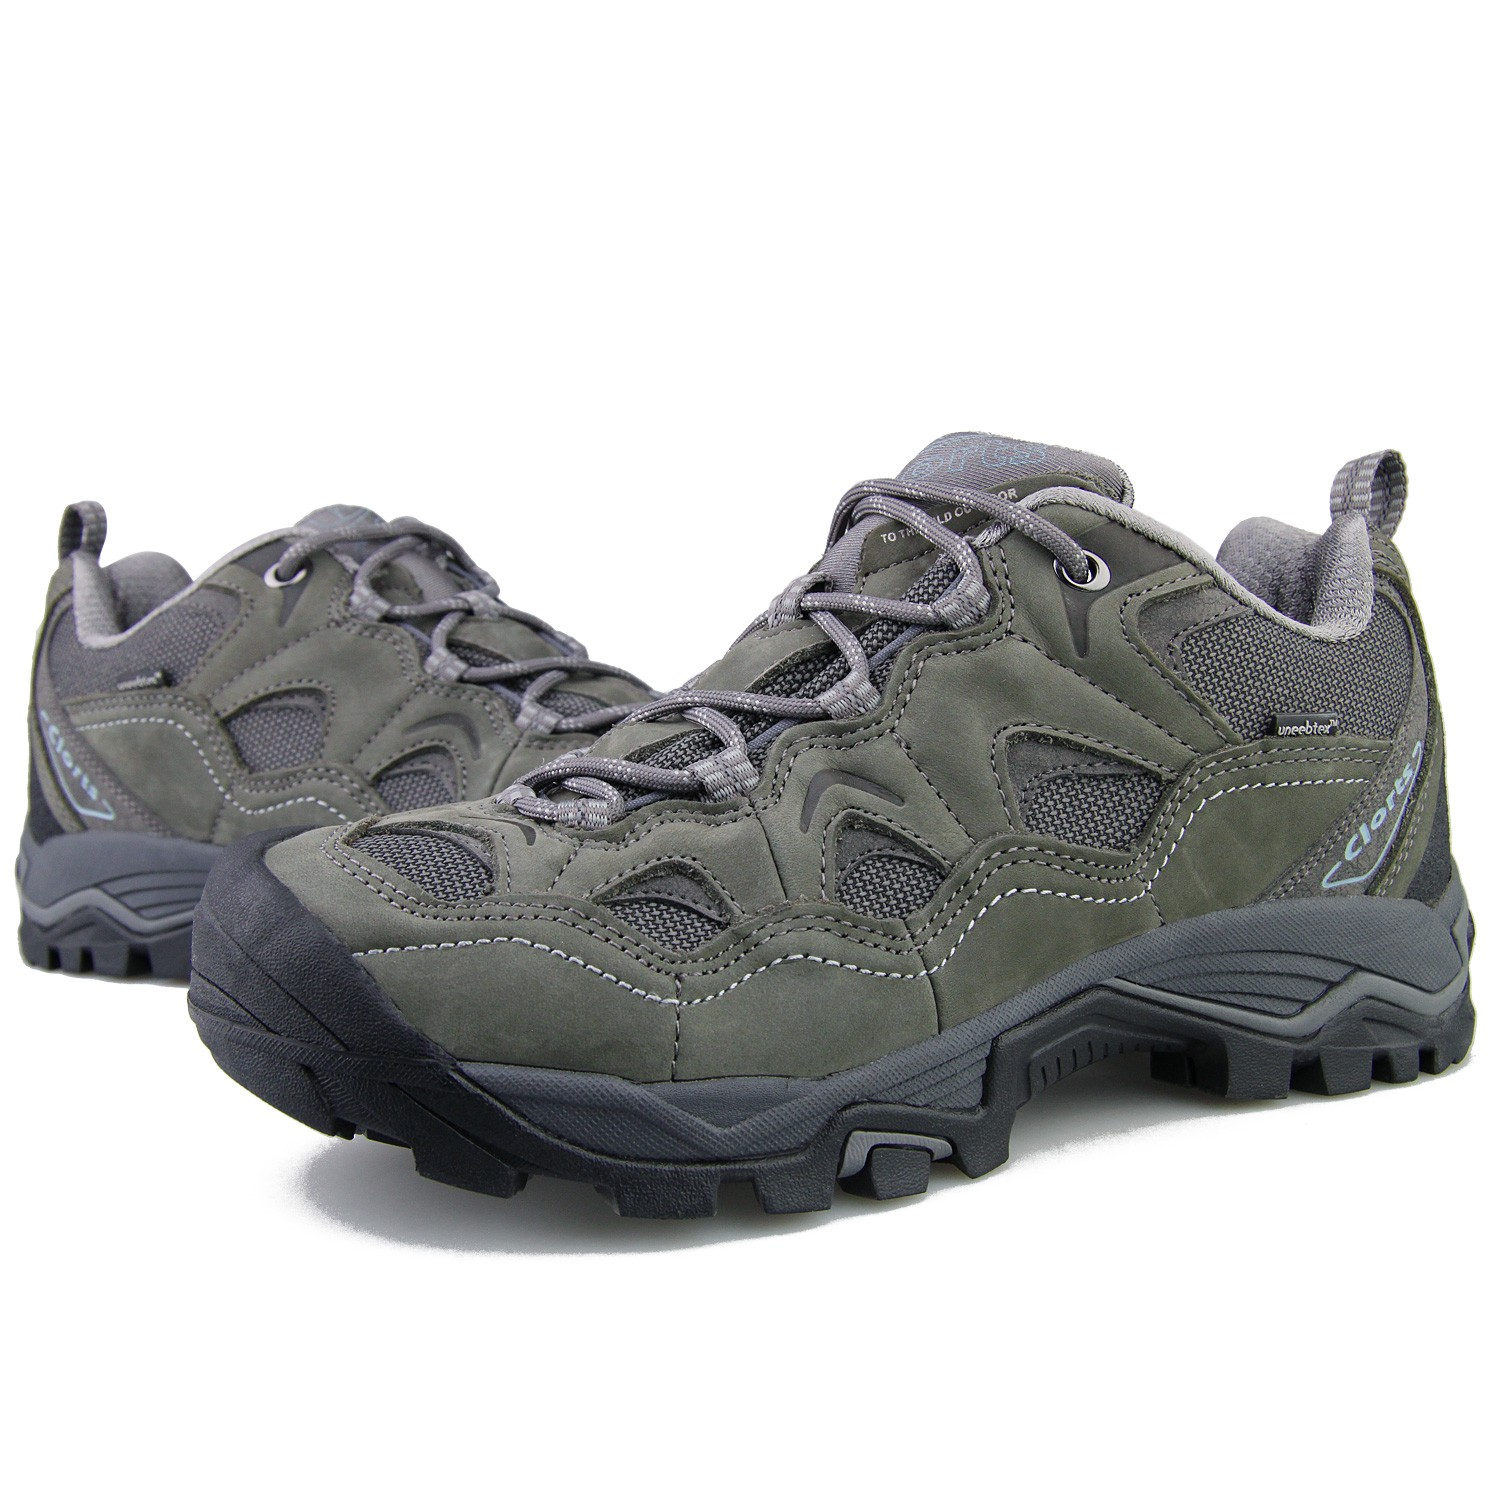 Lightweight Leather Hiking Boots Hiking Shoes Manufacturers, Lightweight Leather Hiking Boots Hiking Shoes Factory, Supply Lightweight Leather Hiking Boots Hiking Shoes